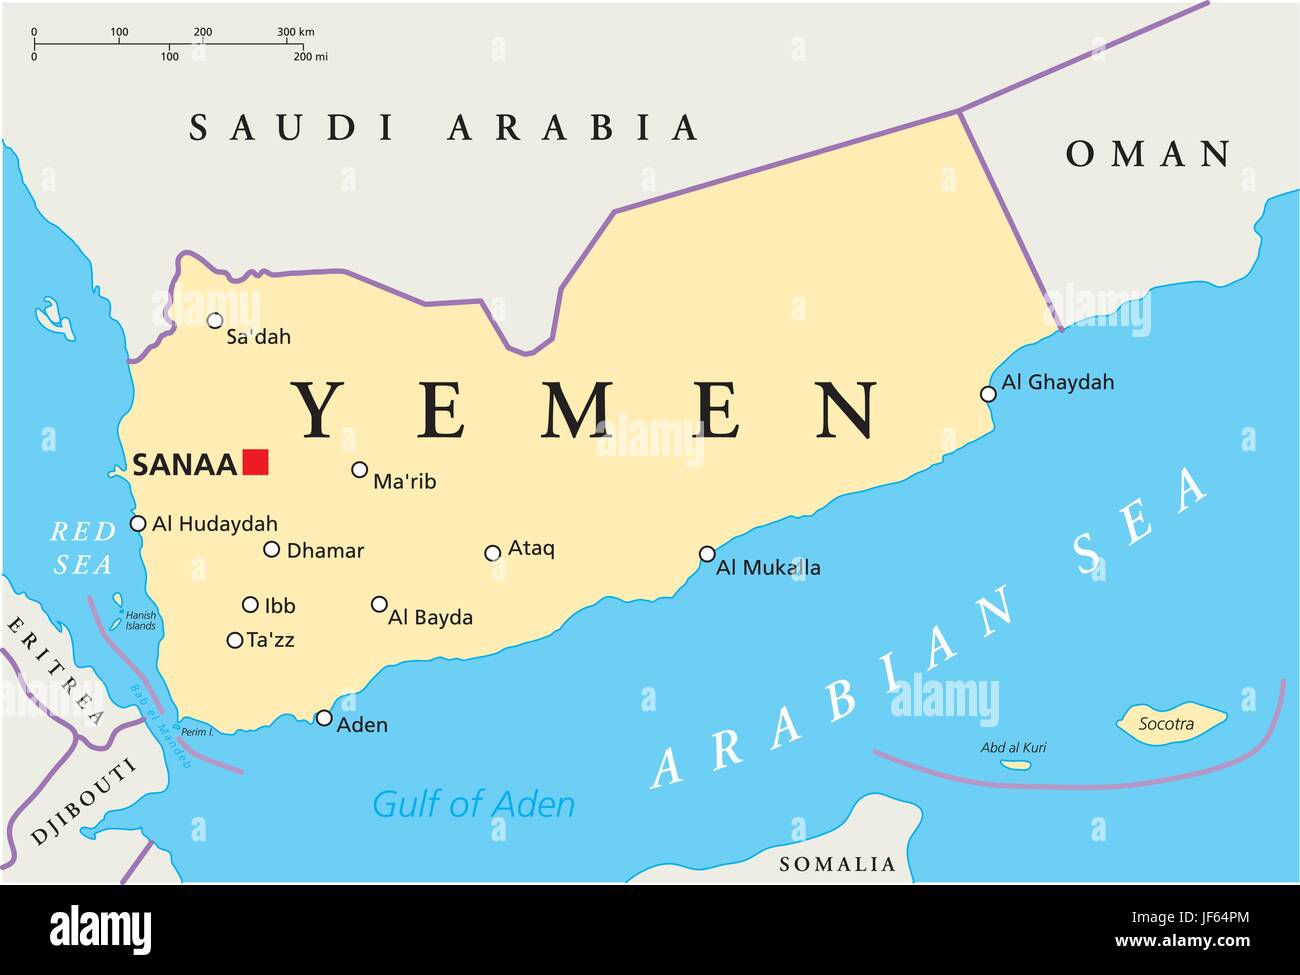 Yemen map atlas map of the world political desert wasteland yemen map atlas map of the world political desert wasteland arab gumiabroncs Images